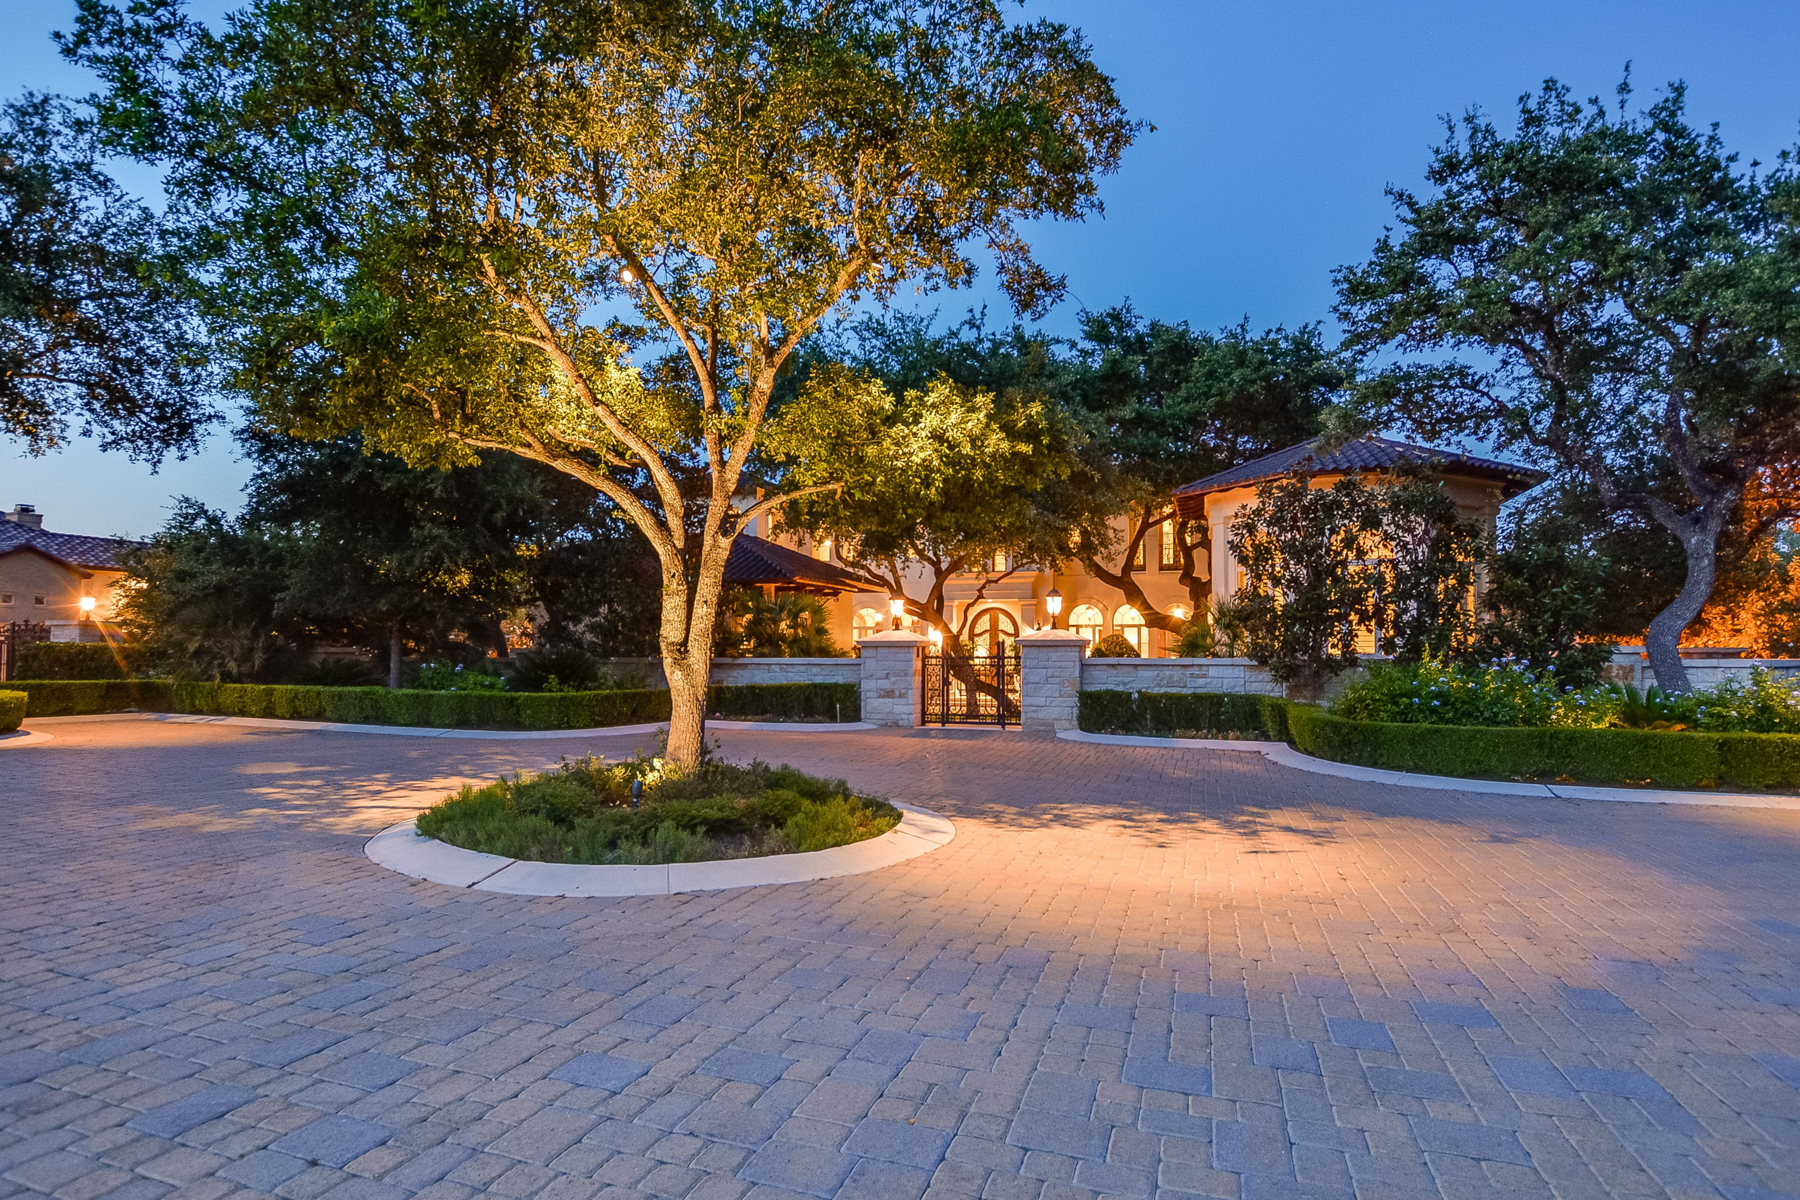 Moradia para Venda às Breathtaking Masterpiece in Huntington 238 Winding Ln San Antonio, Texas, 78231 Estados Unidos